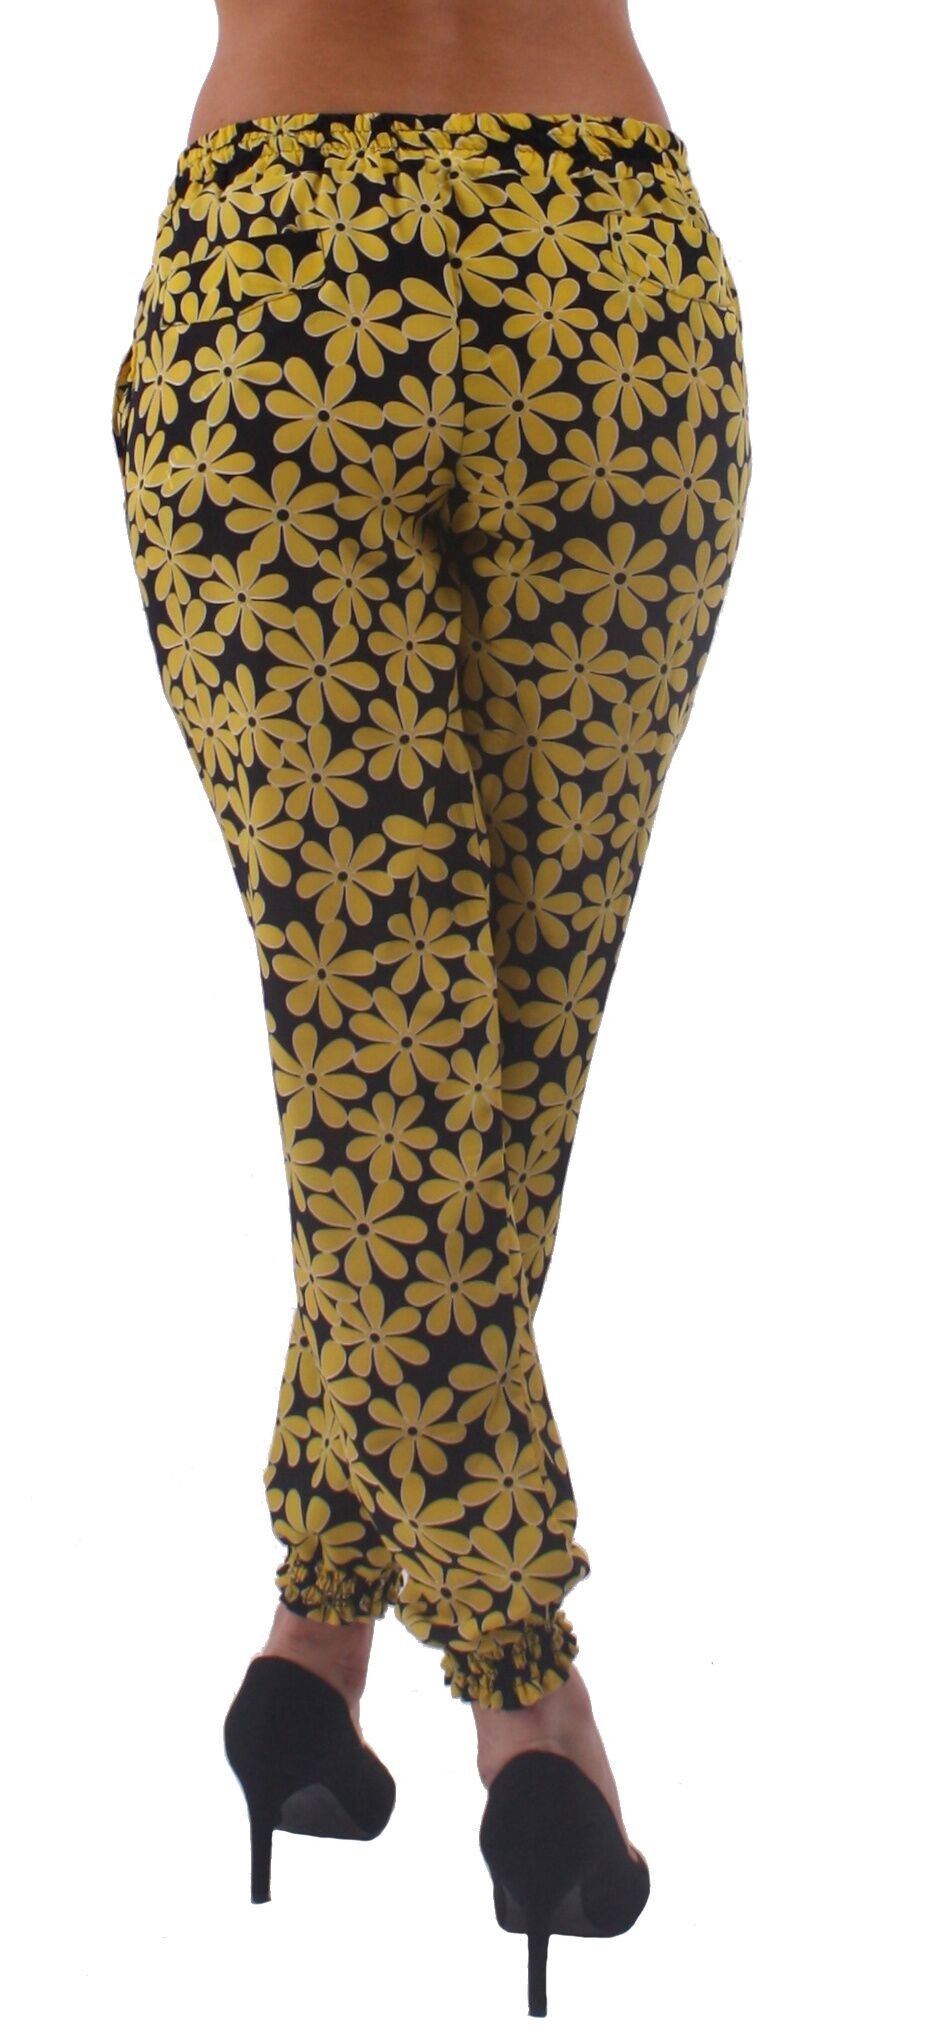 Black and Yellow Daisy Print Harem Style Jogger Pants - Home Goods Galore